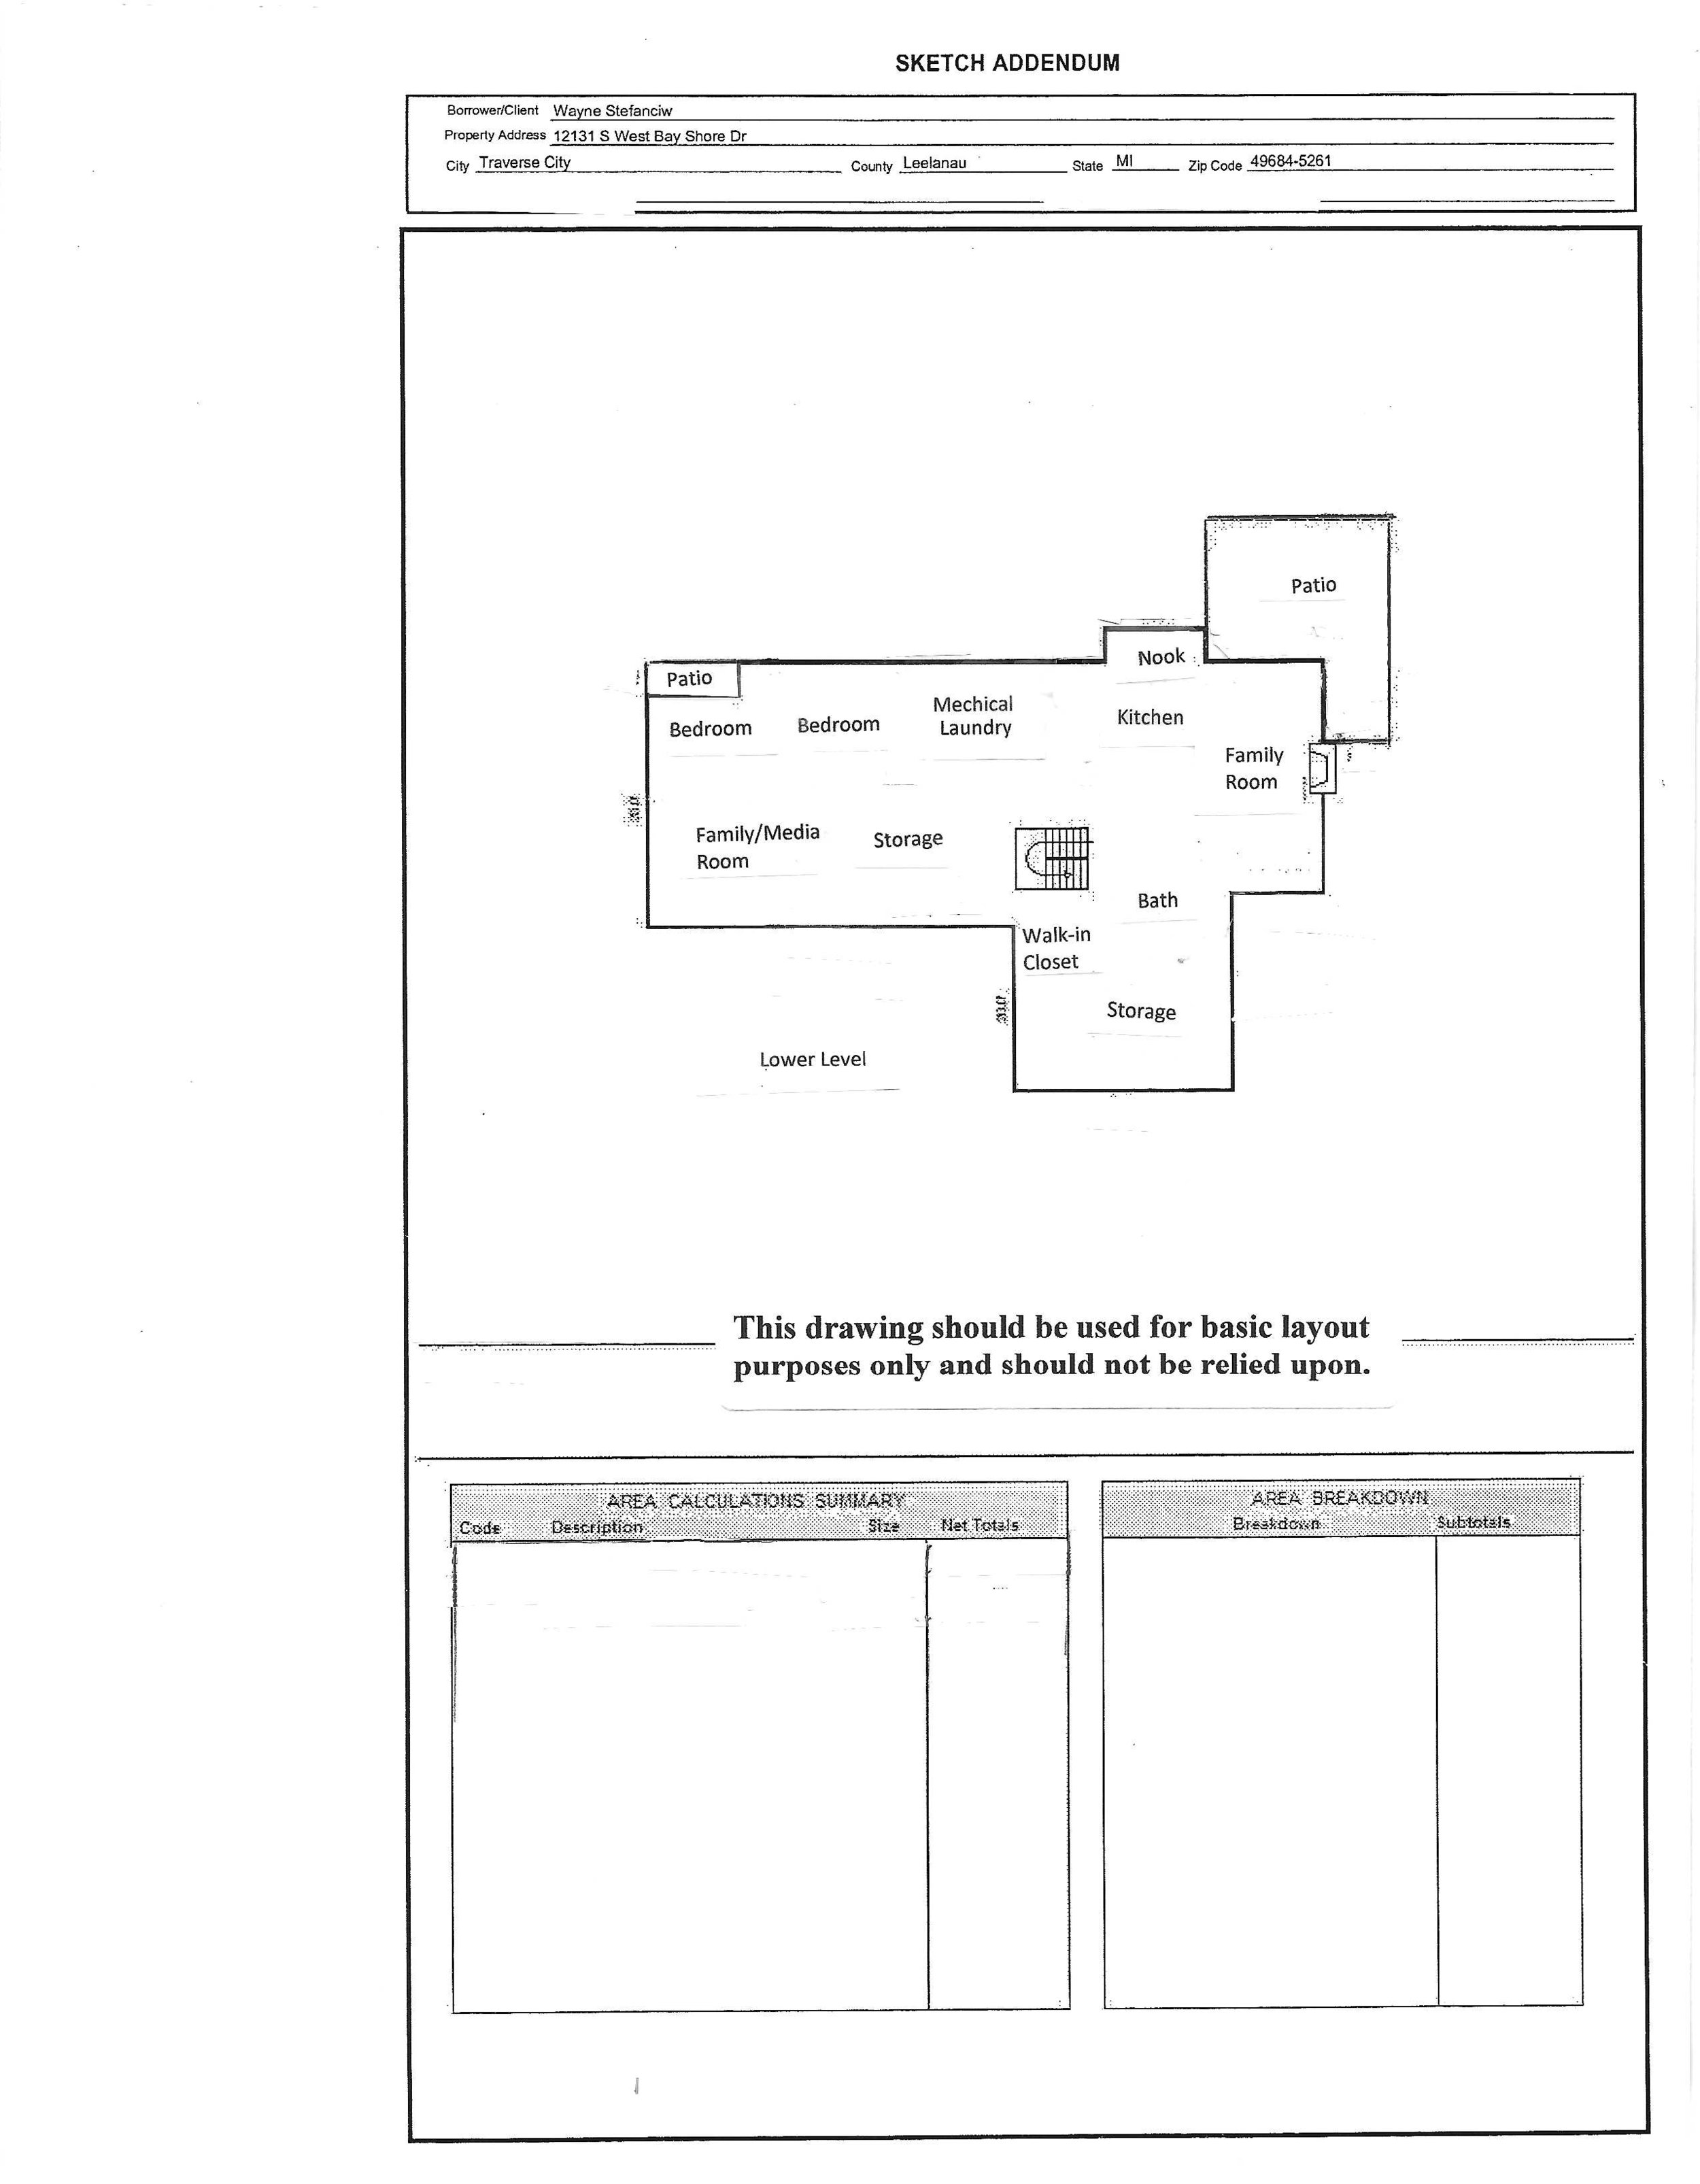 Floor Plans M-22 Waterfront_Page_2.jpg